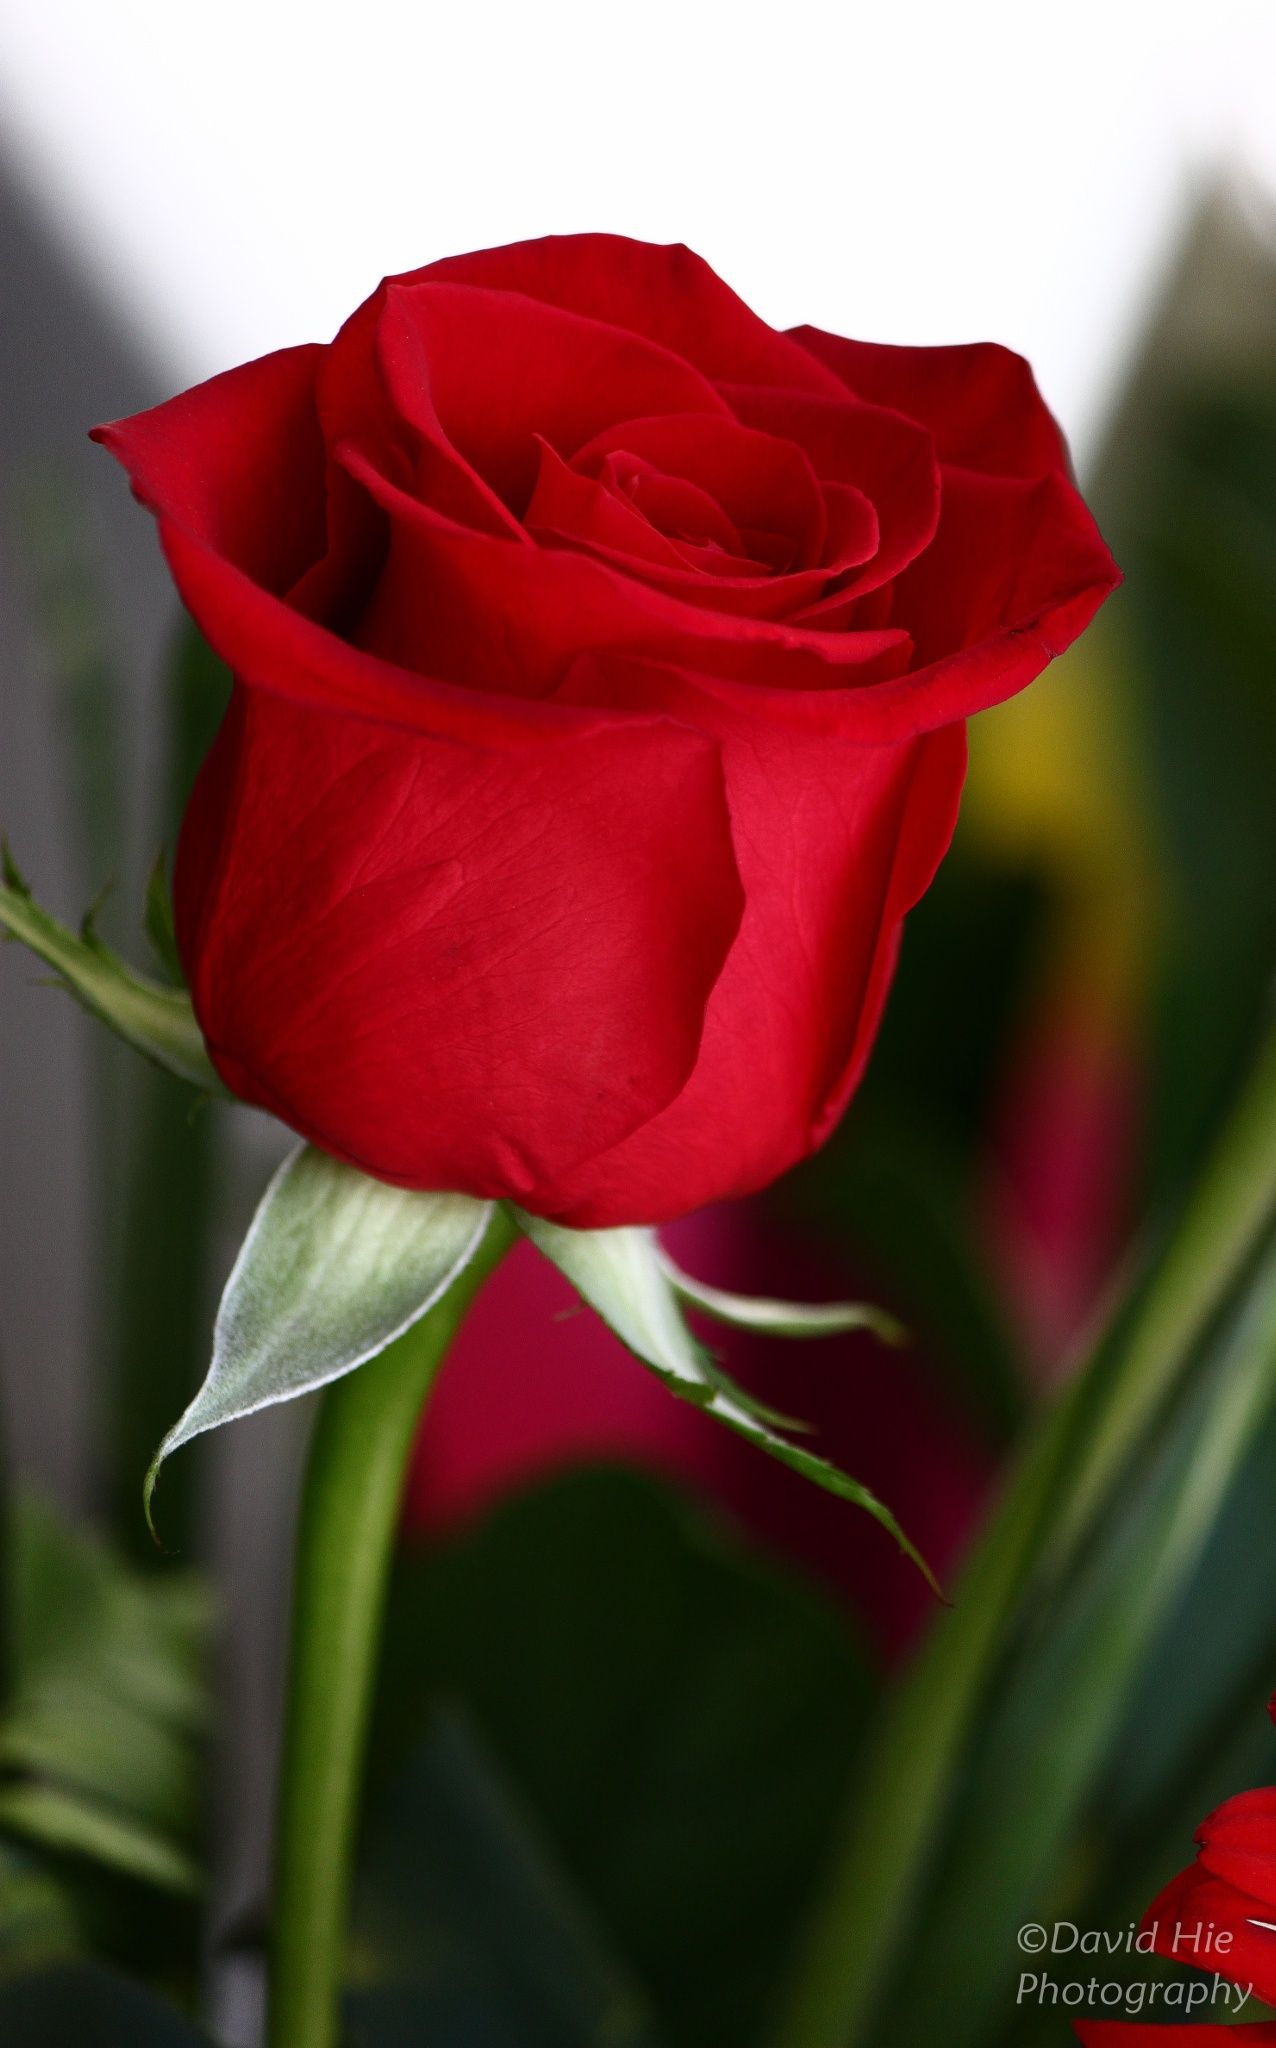 Took this beautiful rose shot from a florist shop. I love